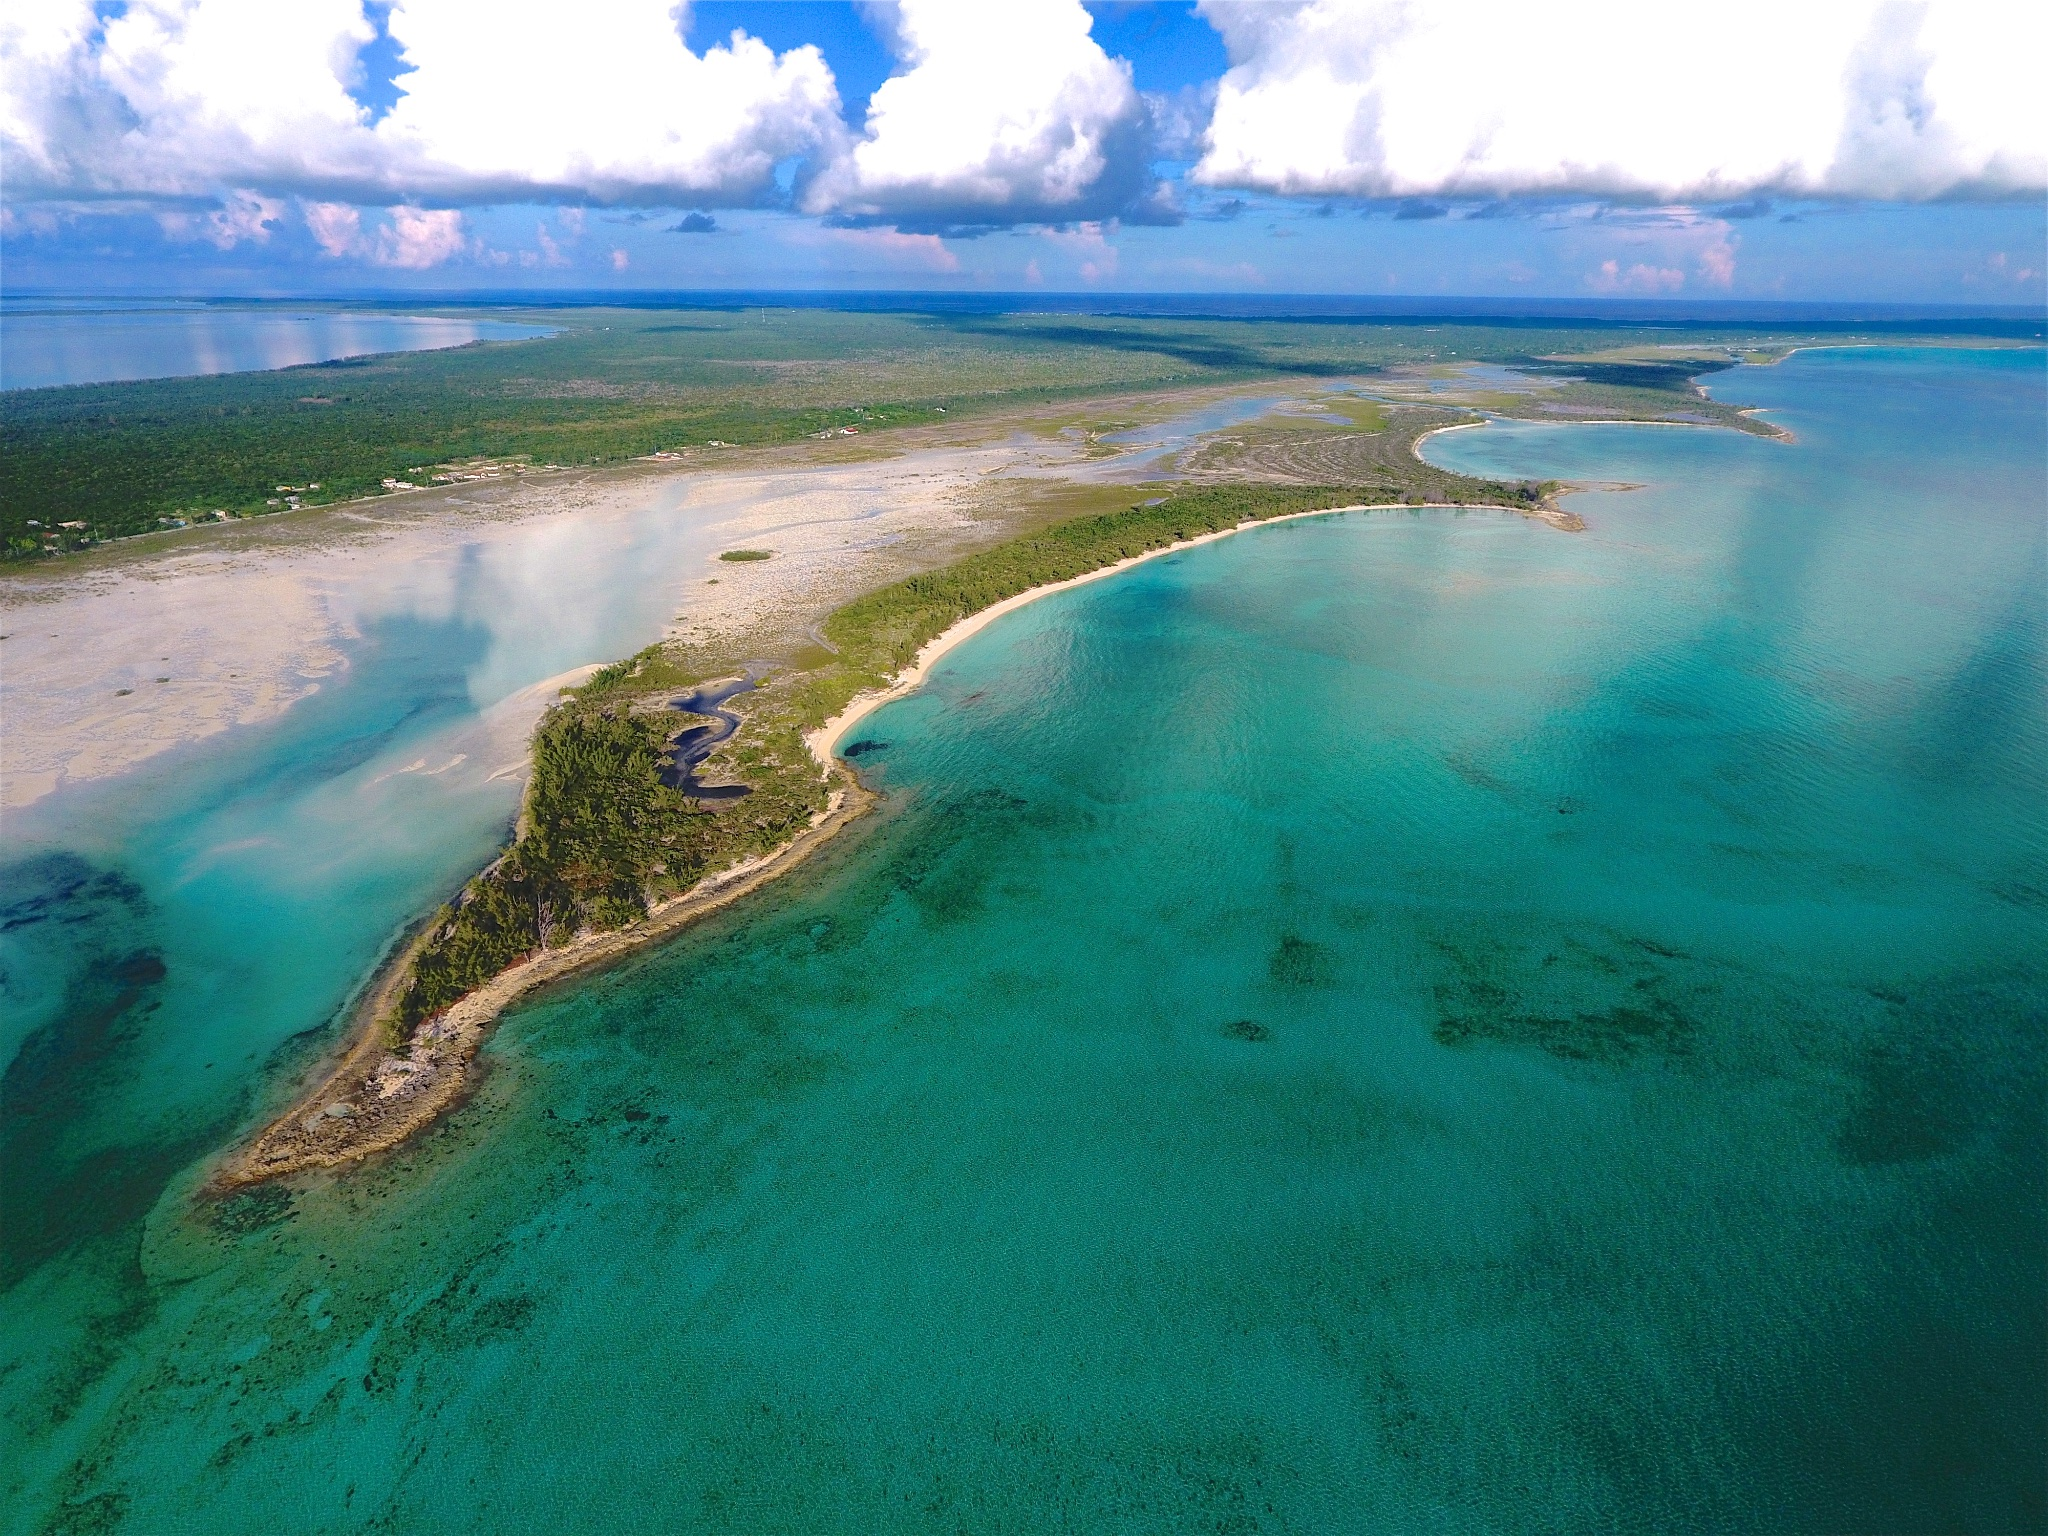 Lera cay eleuthera bahamas caribbean private for Bahamas private island for sale